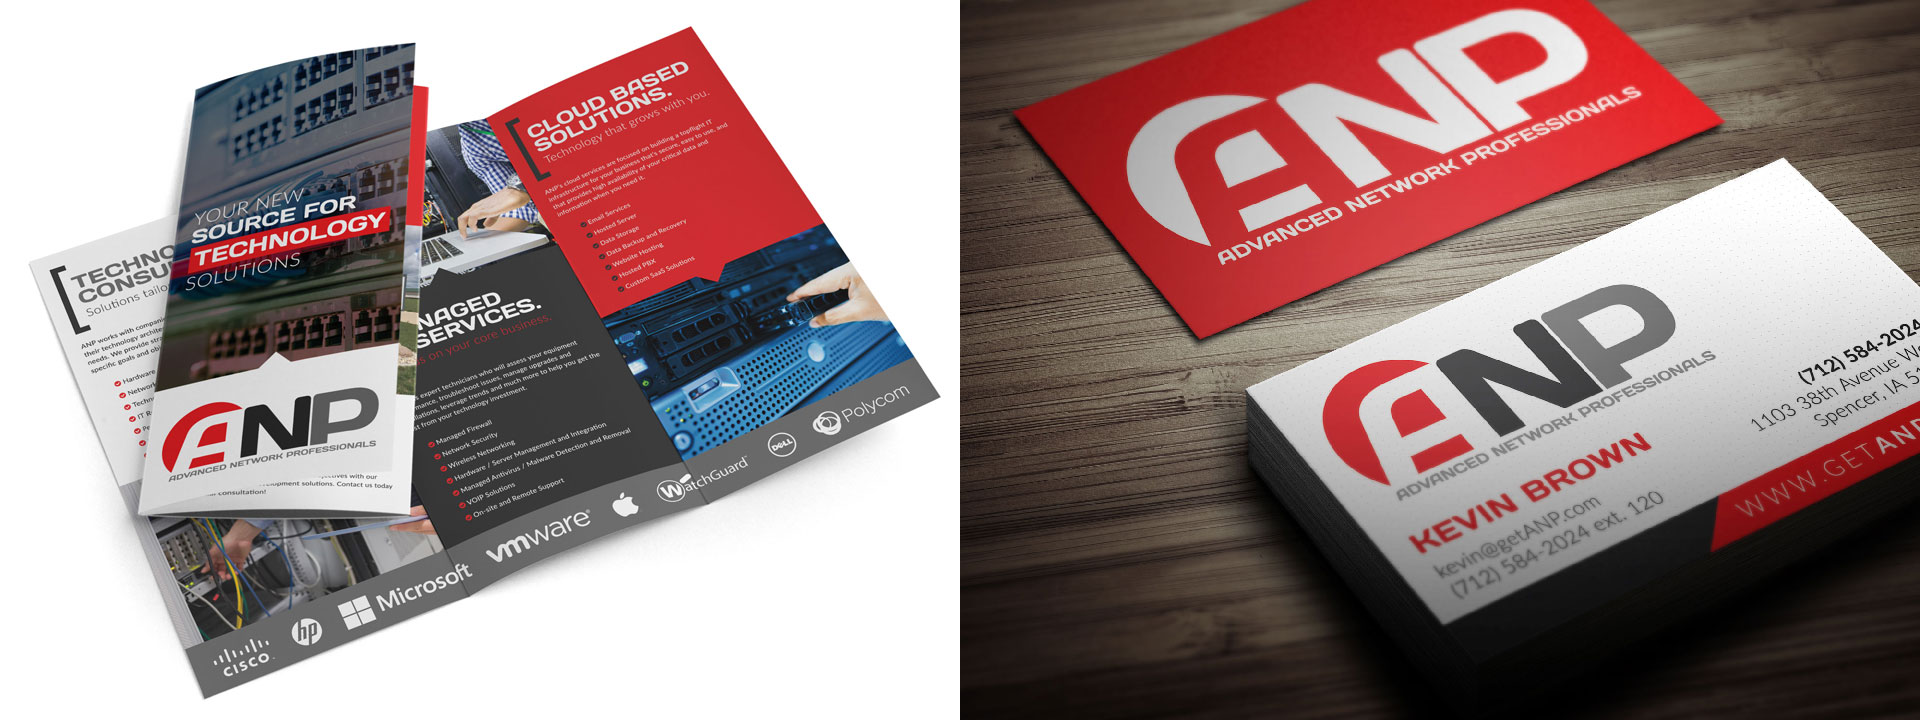 Advanced Network Professionals Print Design